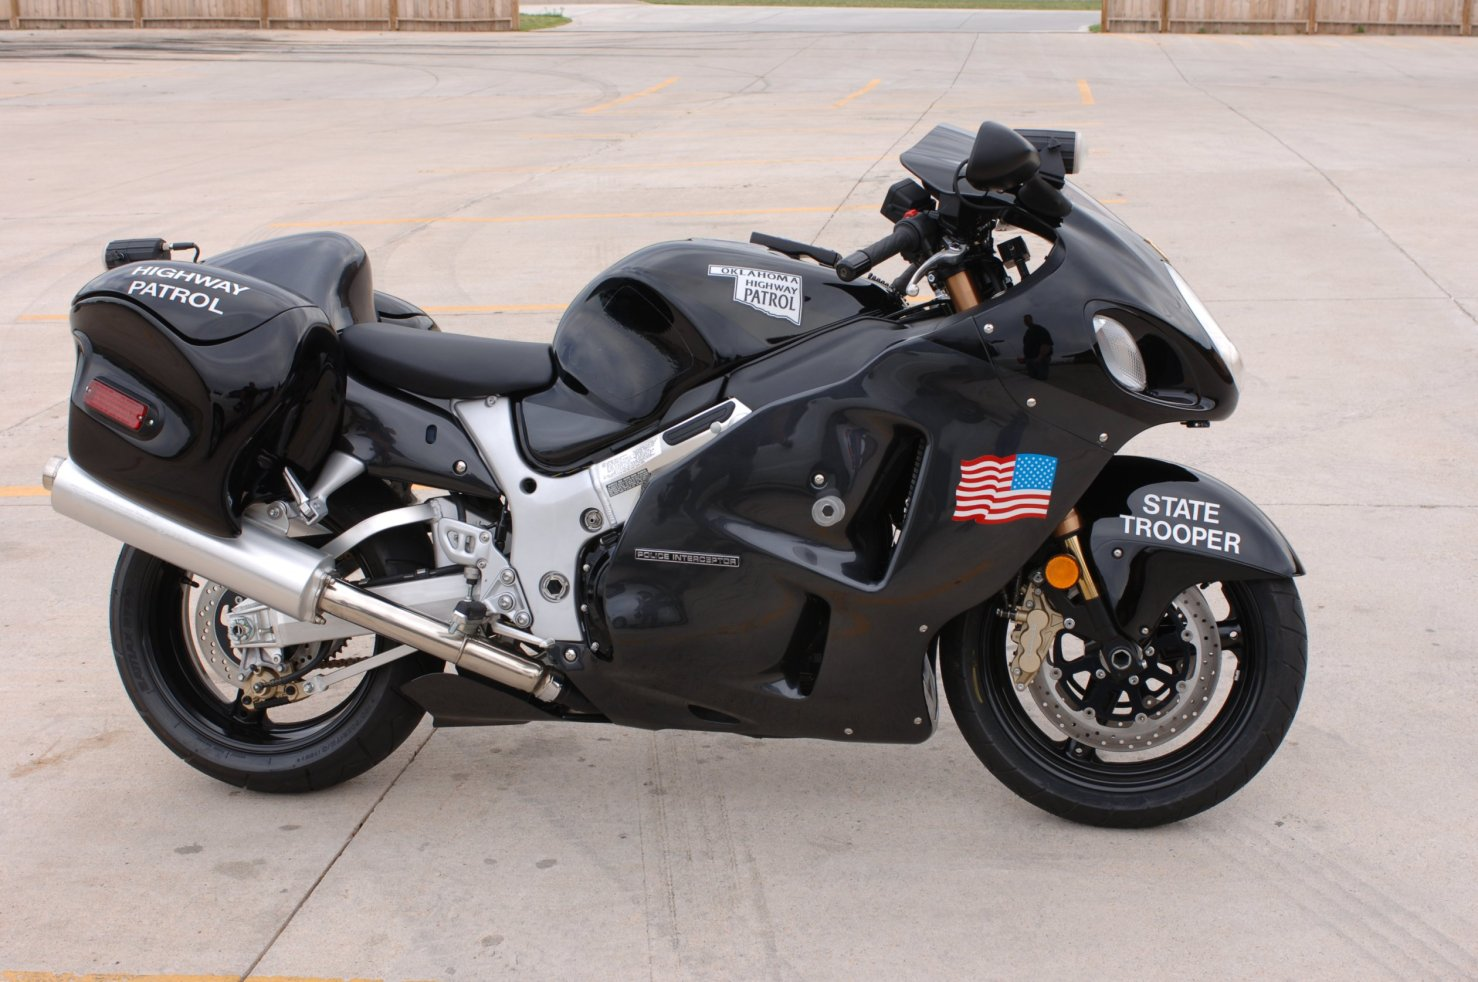 OKLAHOMA HIGHWAY PATROL HAYABUSA 2009 - 2010: June 2006